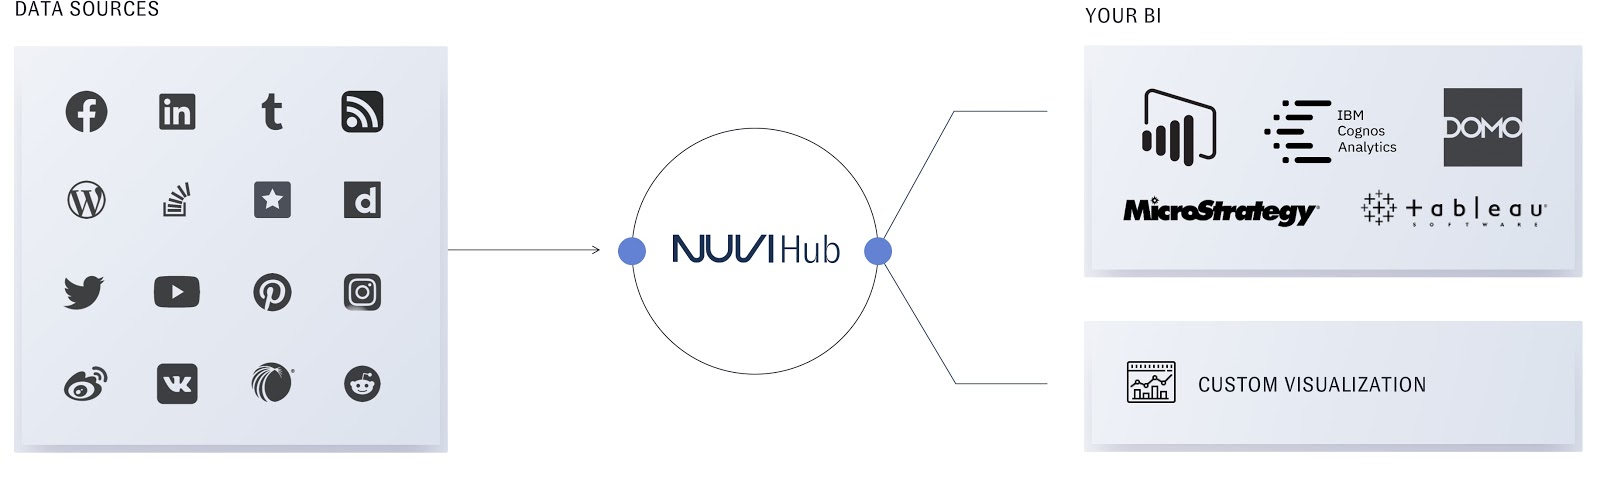 Nuvi Hub takes data from data sources like social platforms and RSS feeds, then shows the data to marketers and data scientists and analysts while the data is still in Nuvi Hub. this images shows some of the data sources to the left, then a line connects it to Nuvi Hub, which is housed in a circle. From there lines then go in two different directions: one to a company's business intelligence tools and the other to custom visualizations.